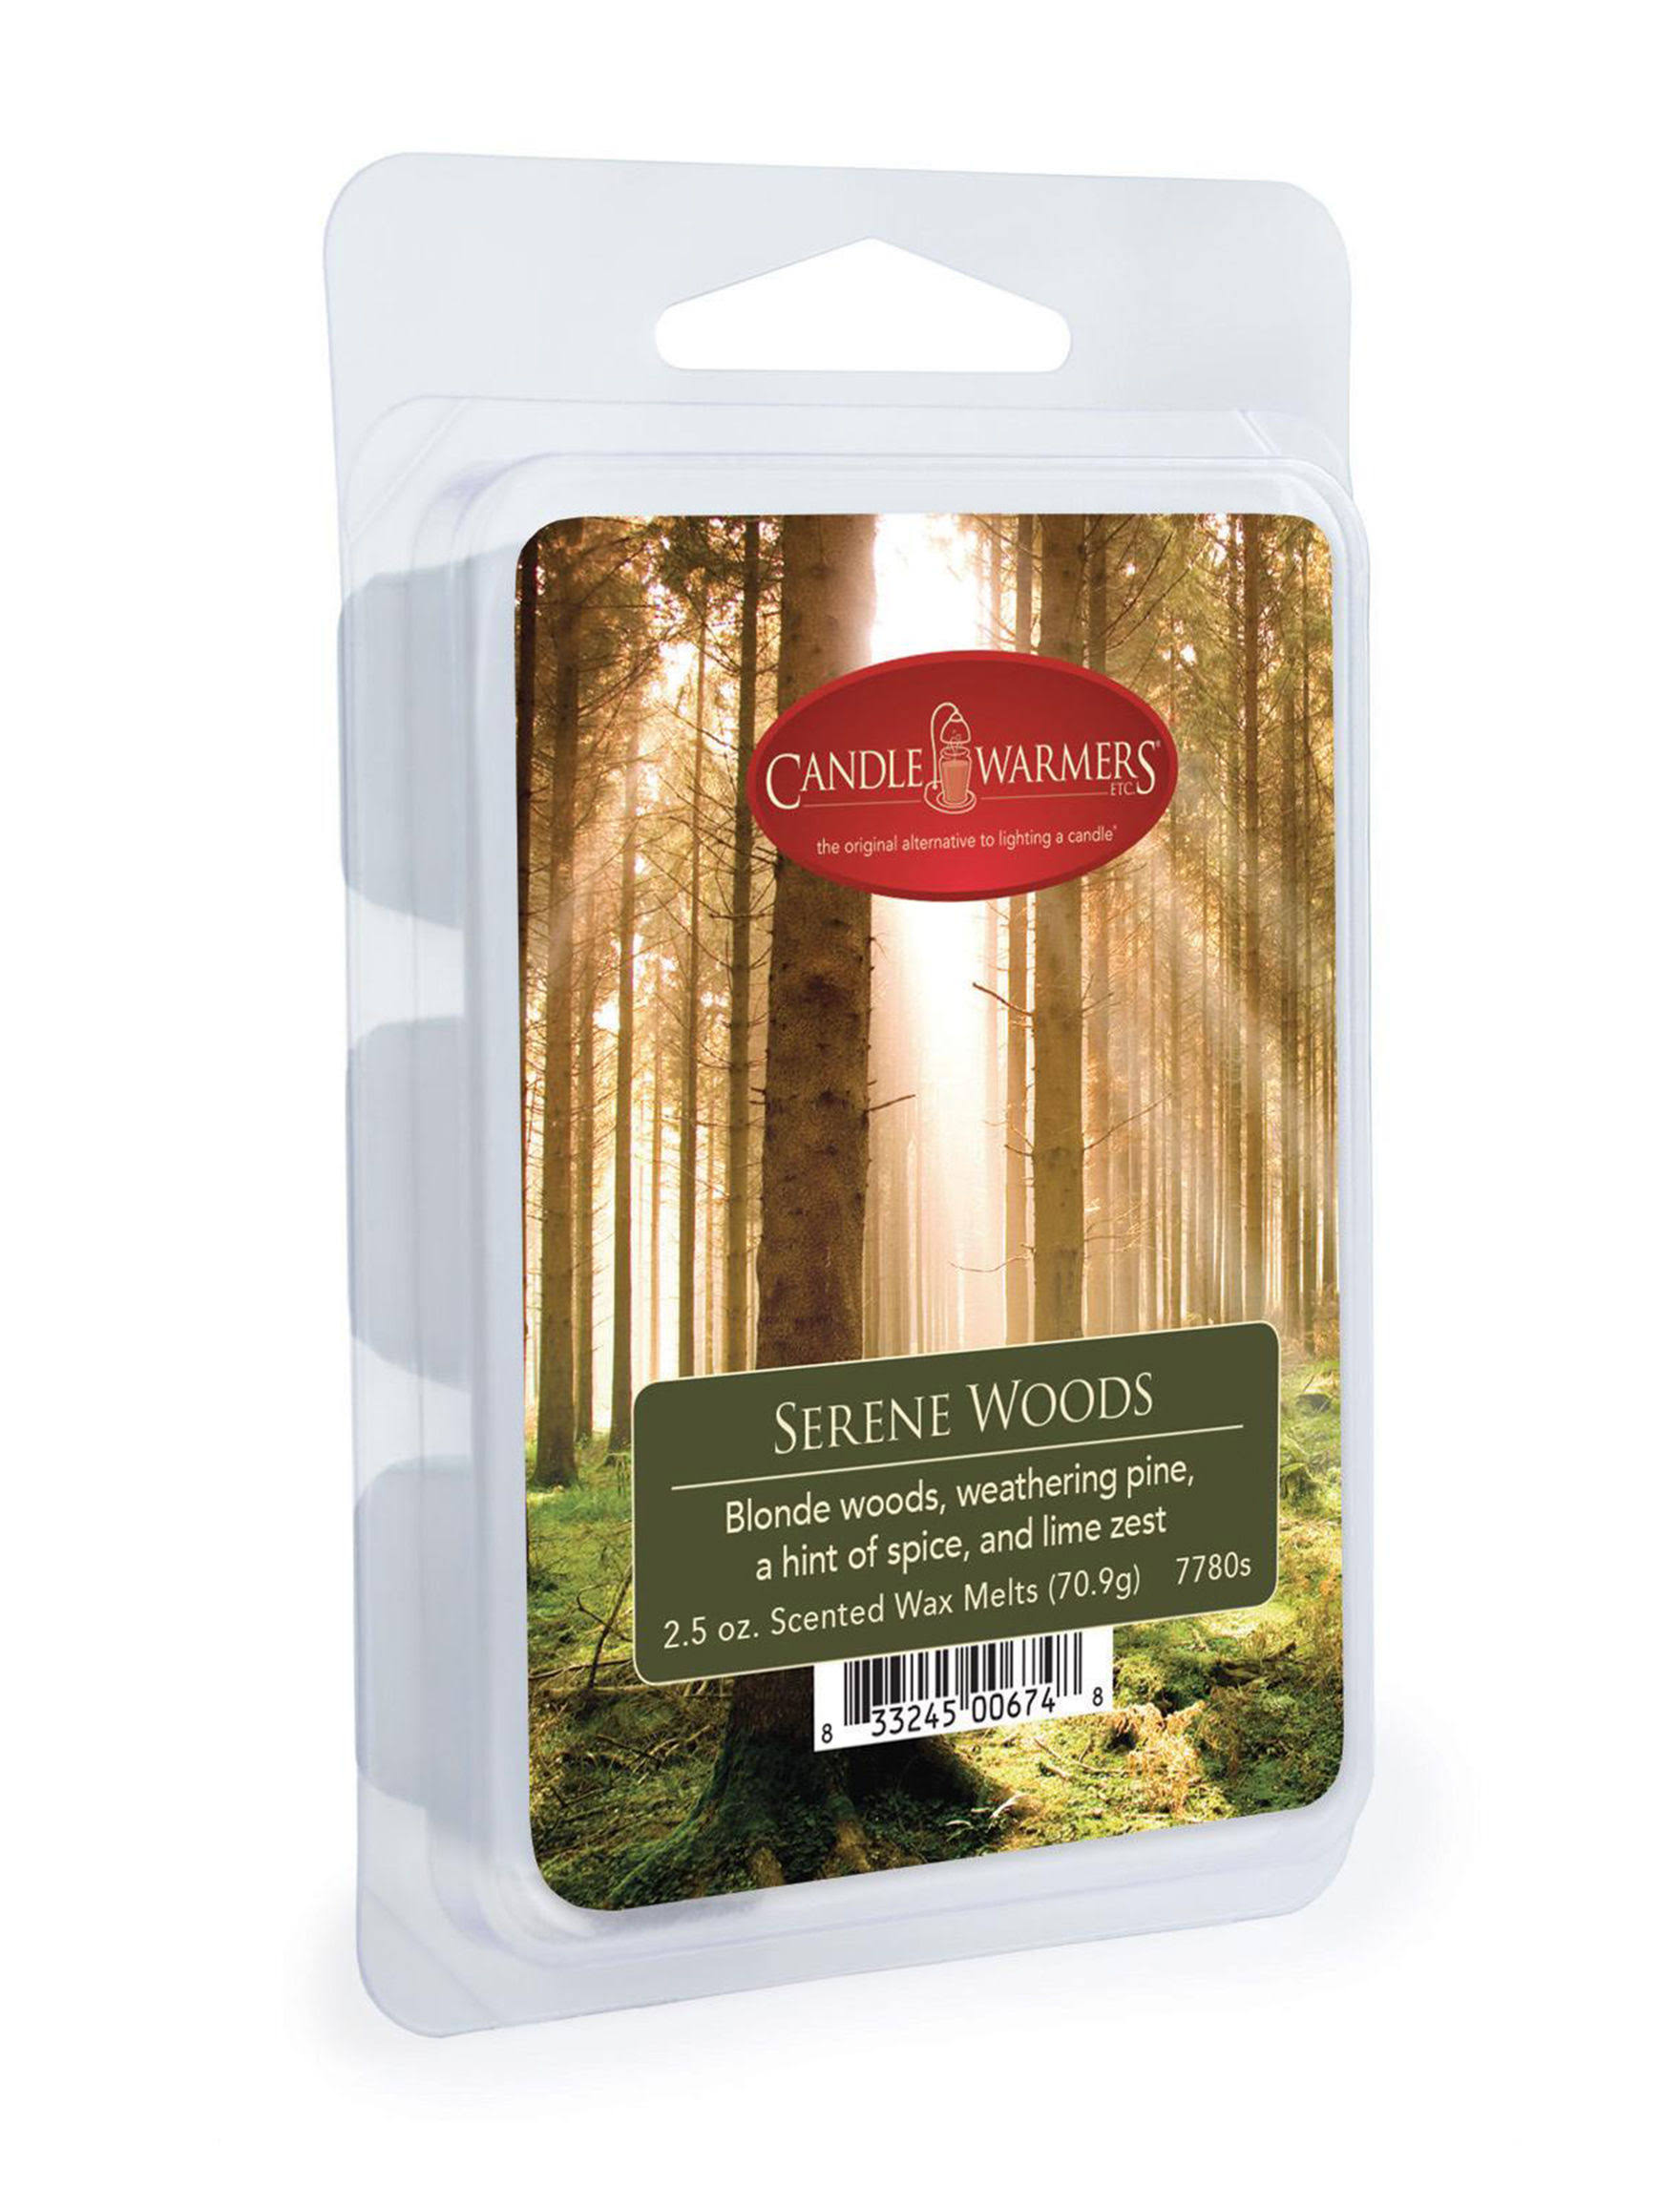 Candle Warmers Scented Wax Melts - Serene Woods, 70.9g